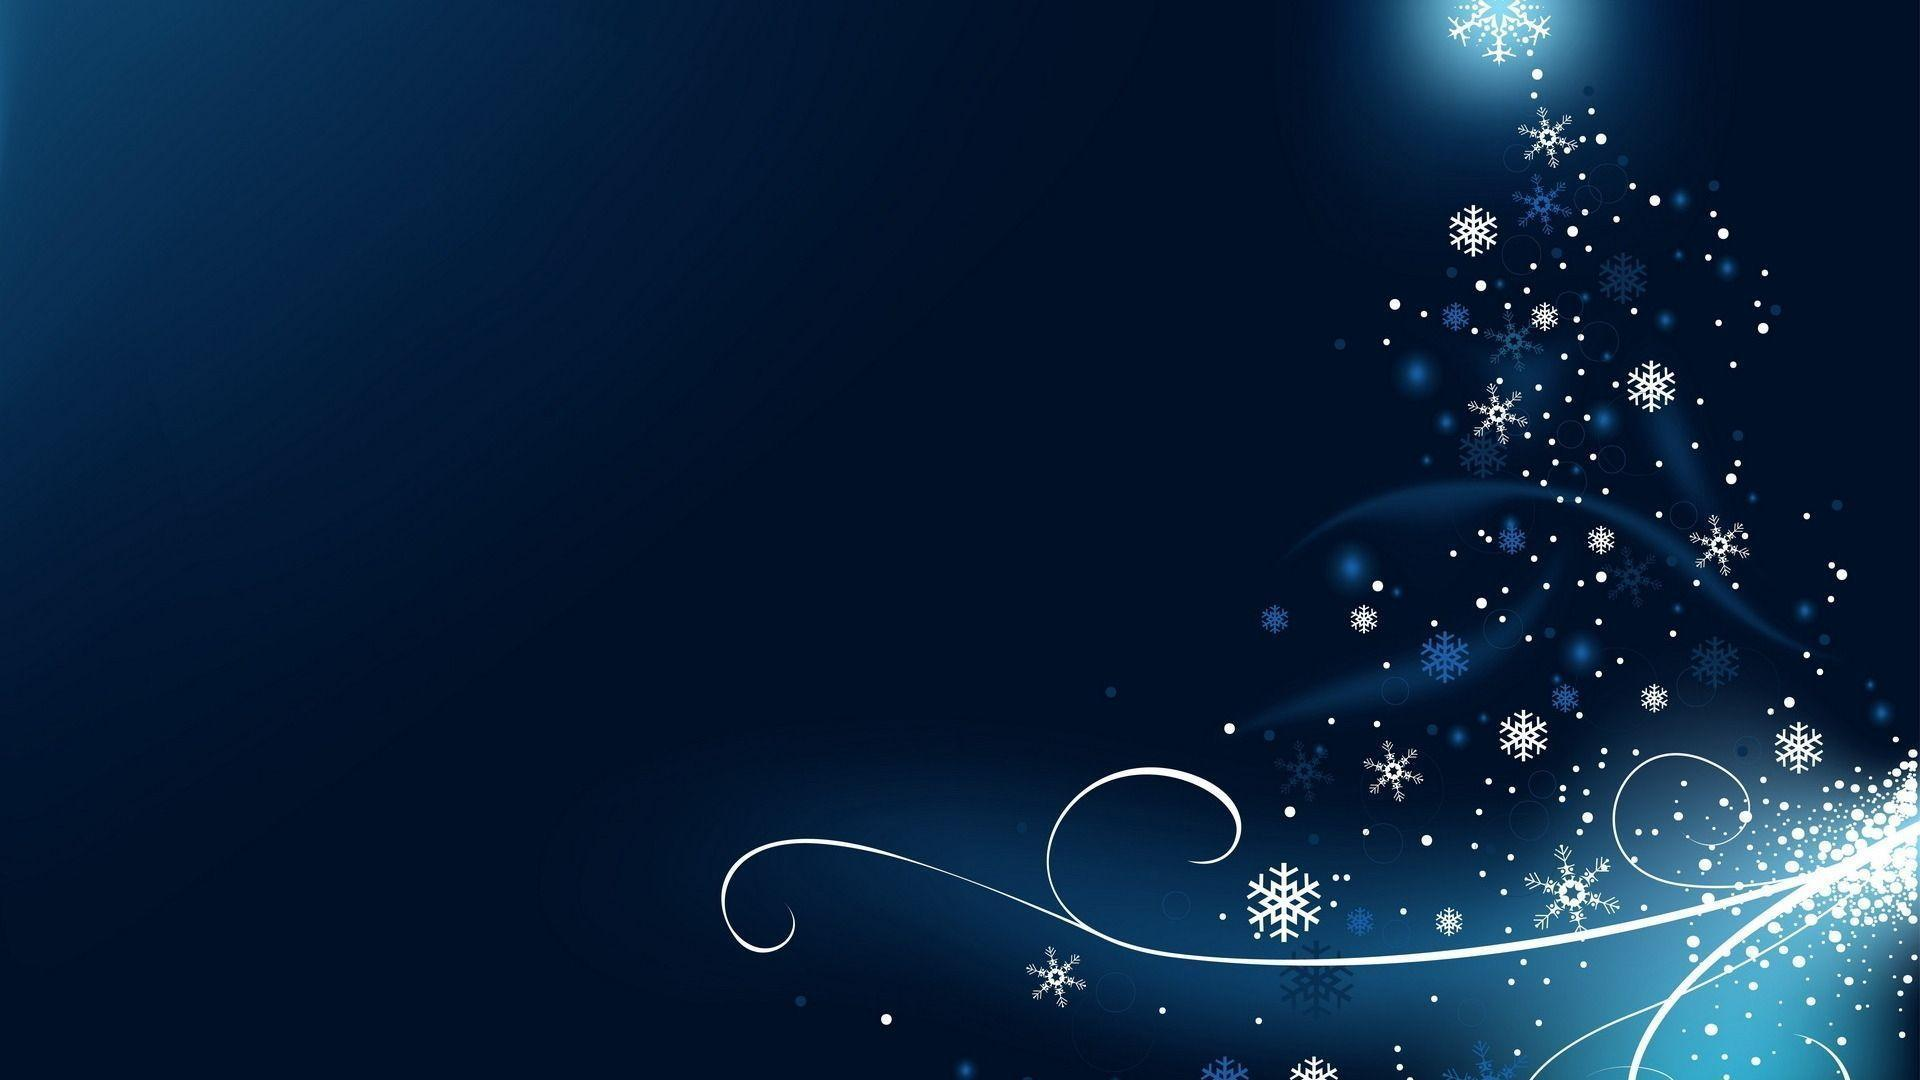 Christmas Theme Wallpapers Wallpaper Cave